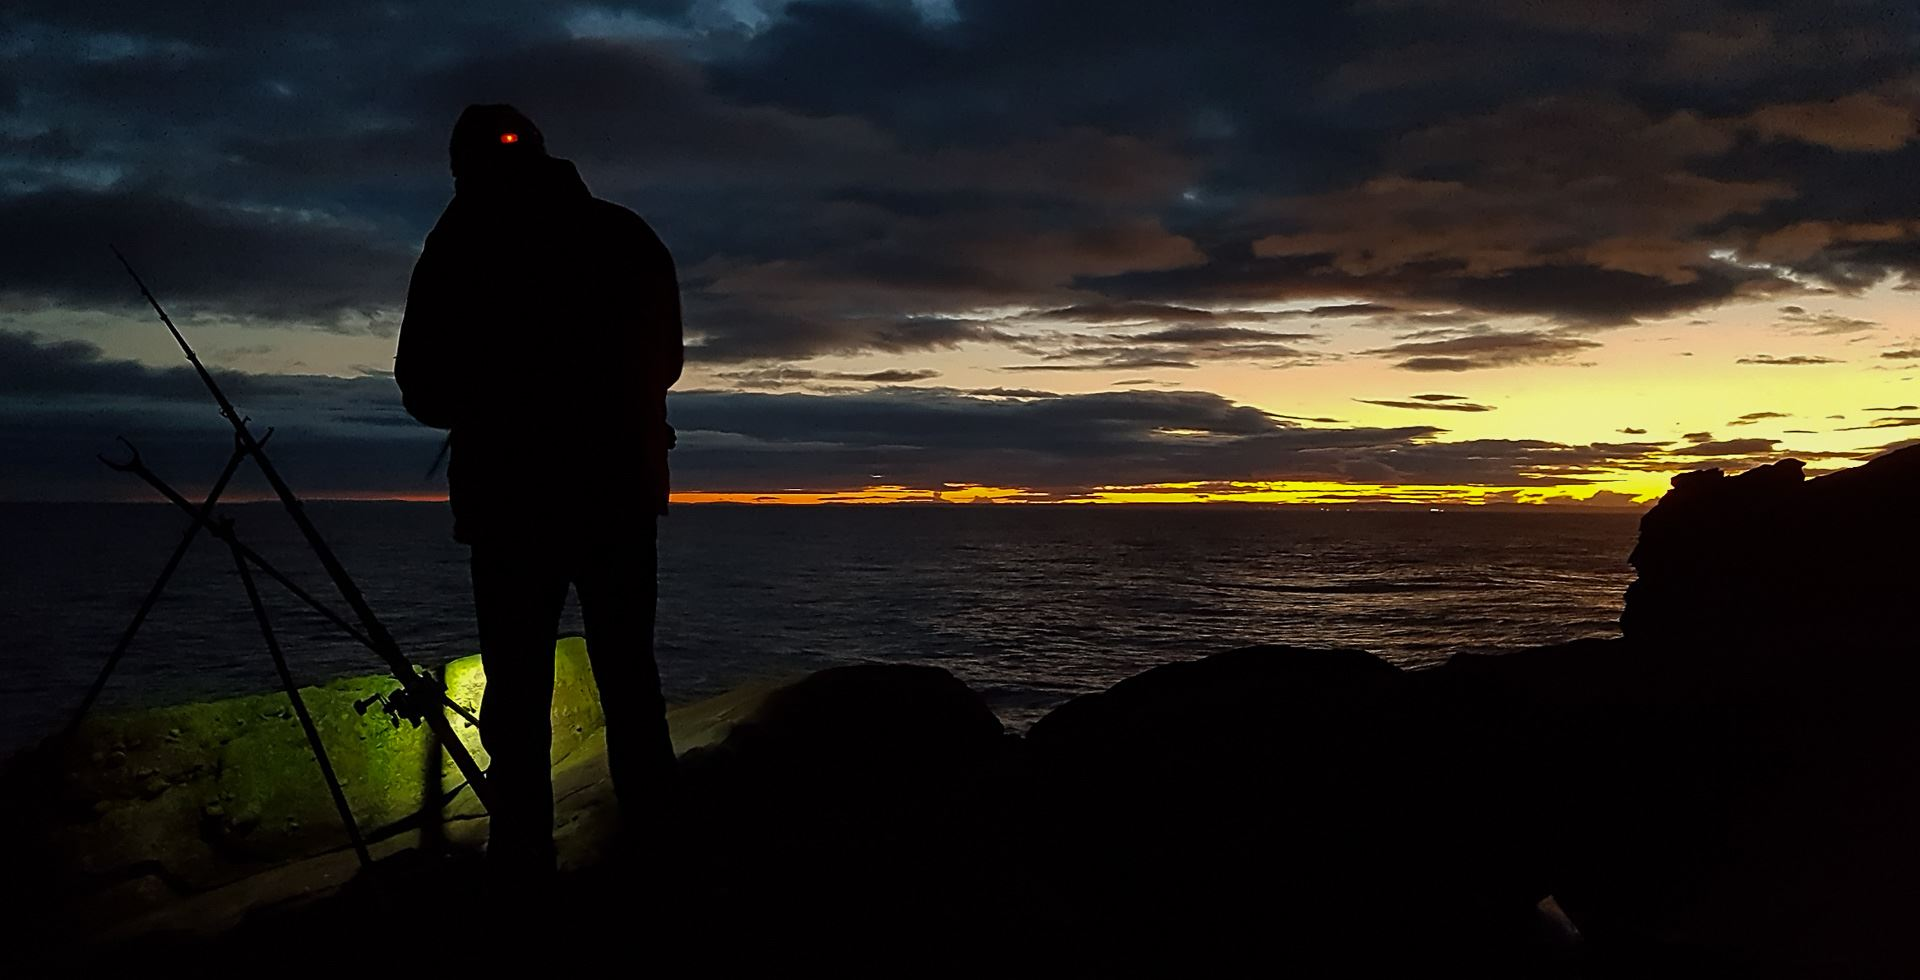 A fine winter sunset on the Arbroath cliffs helps offset a poor day's fishing